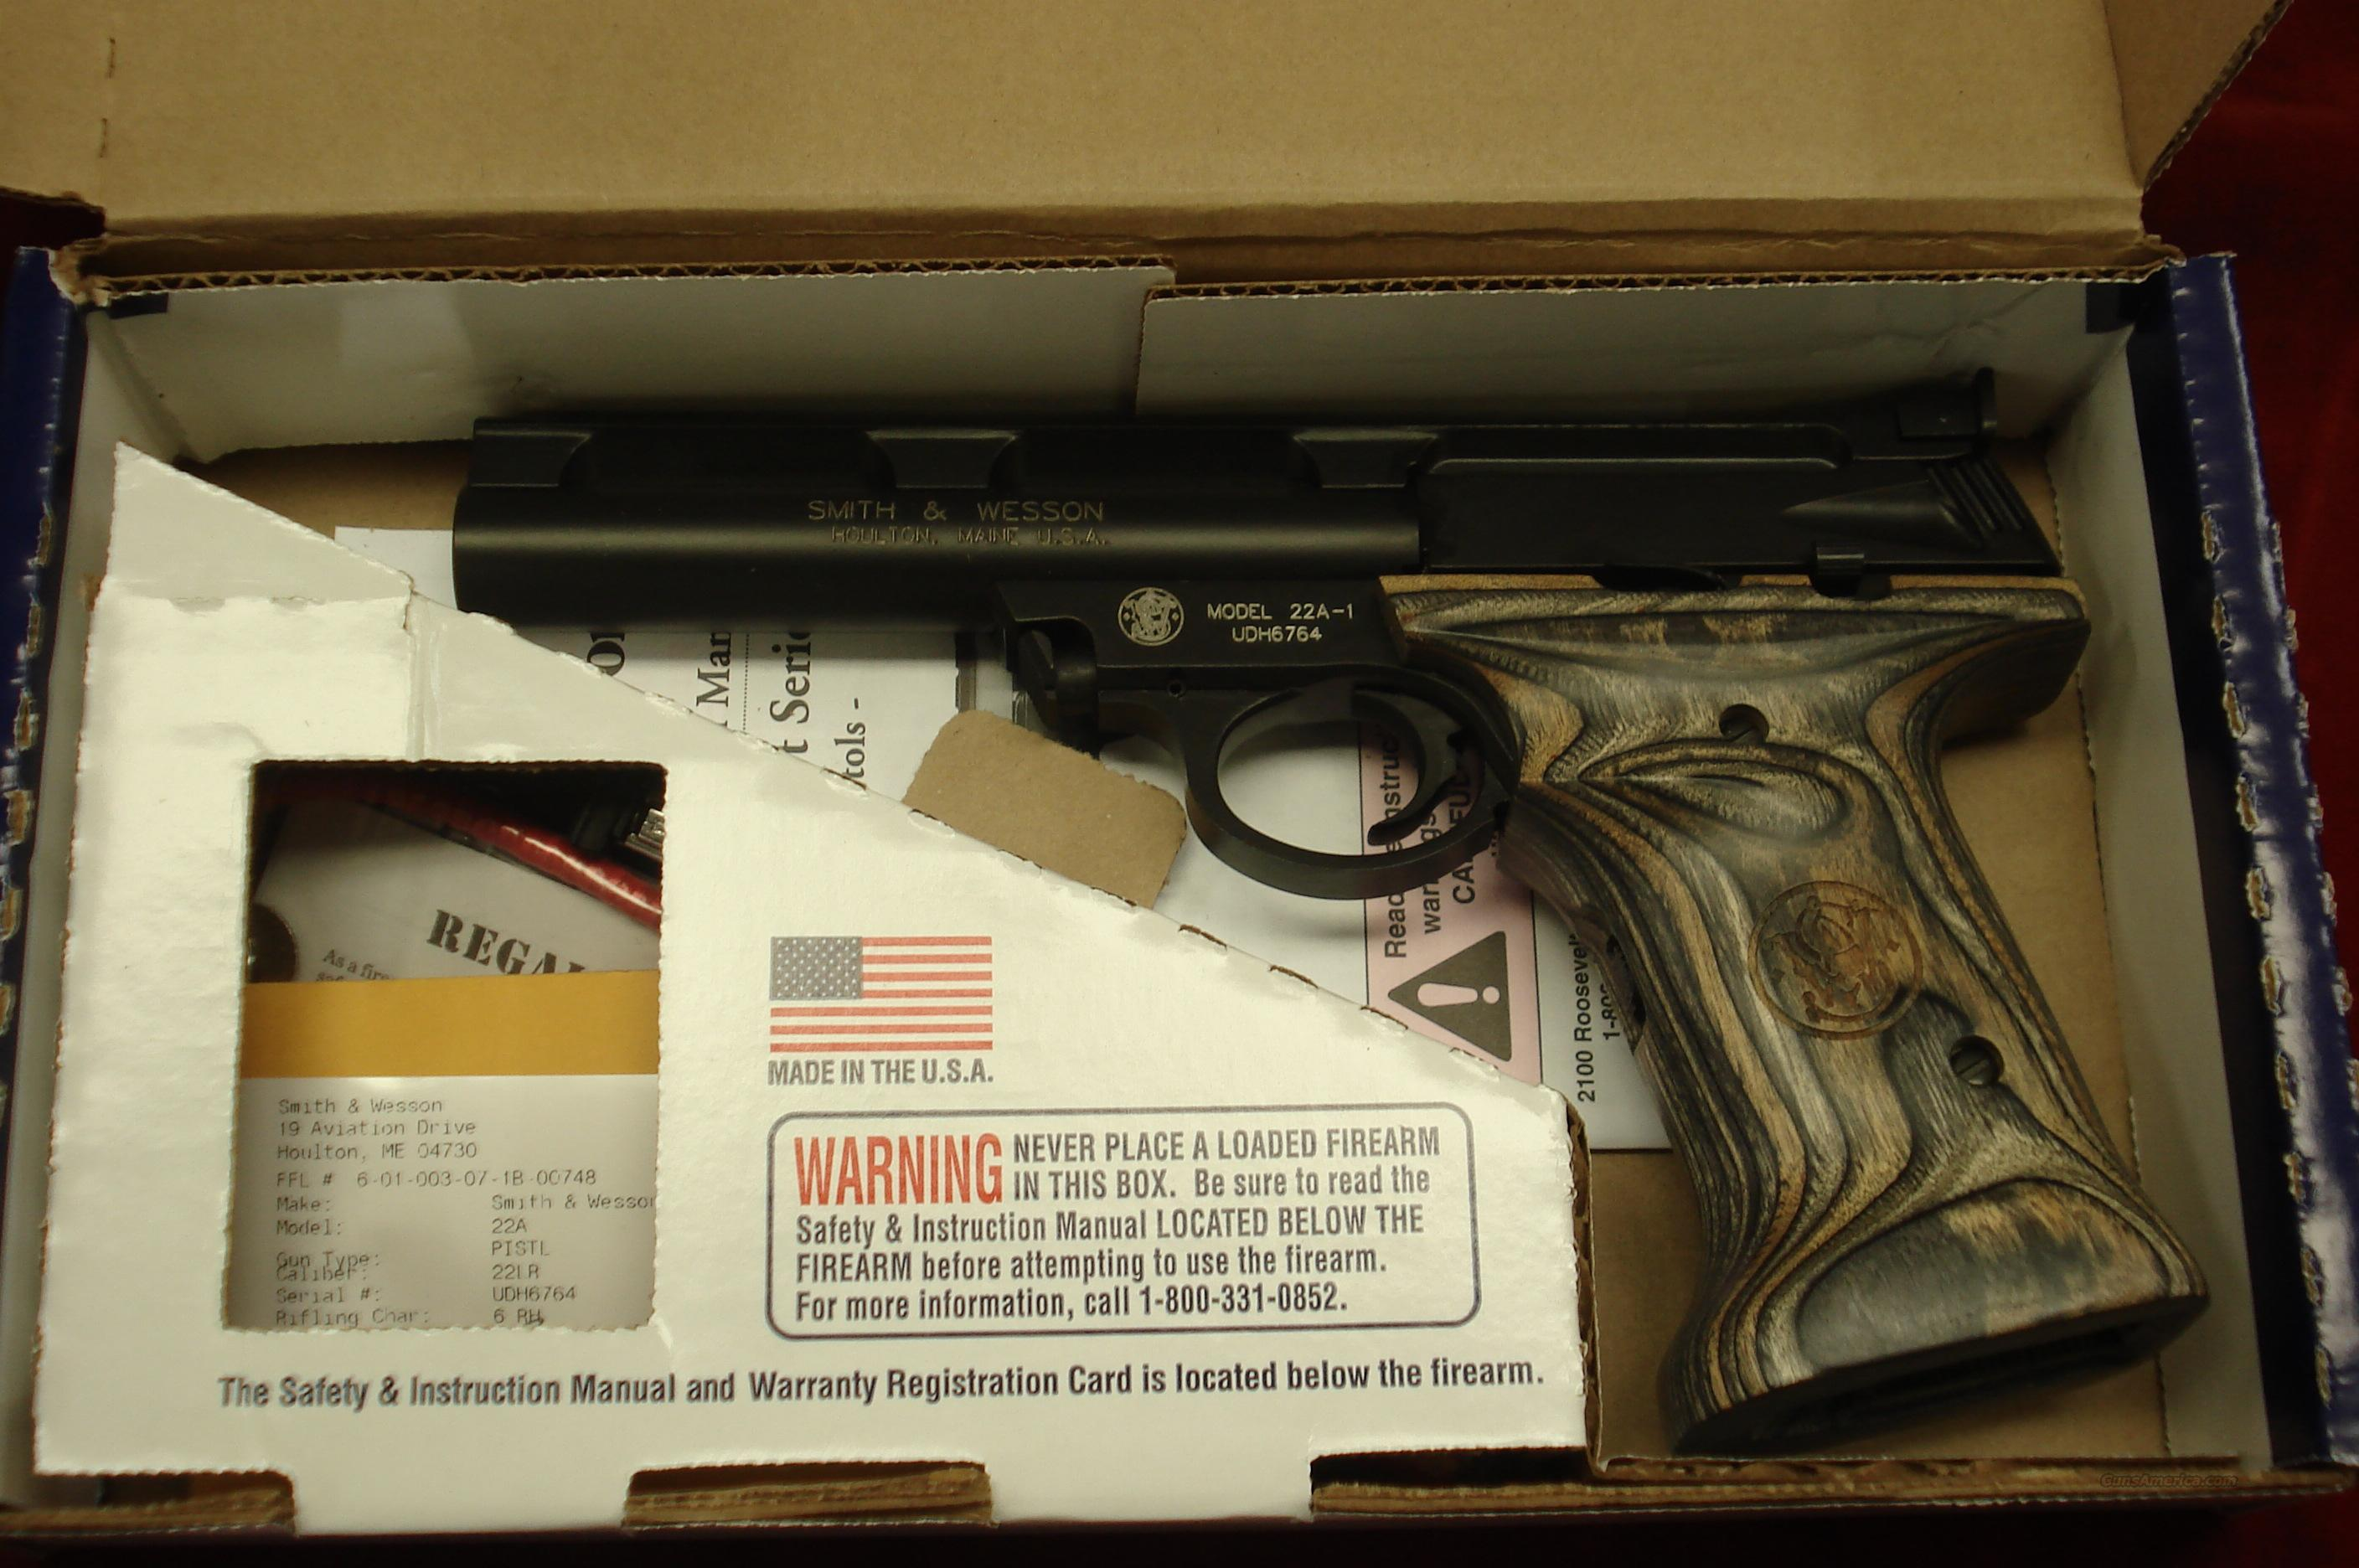 smith and wesson 22a 22lr 5 5 bull barrel ne for sale rh gunsamerica com Smith and Wesson 22A Grips Smith and Wesson 22A Magazine